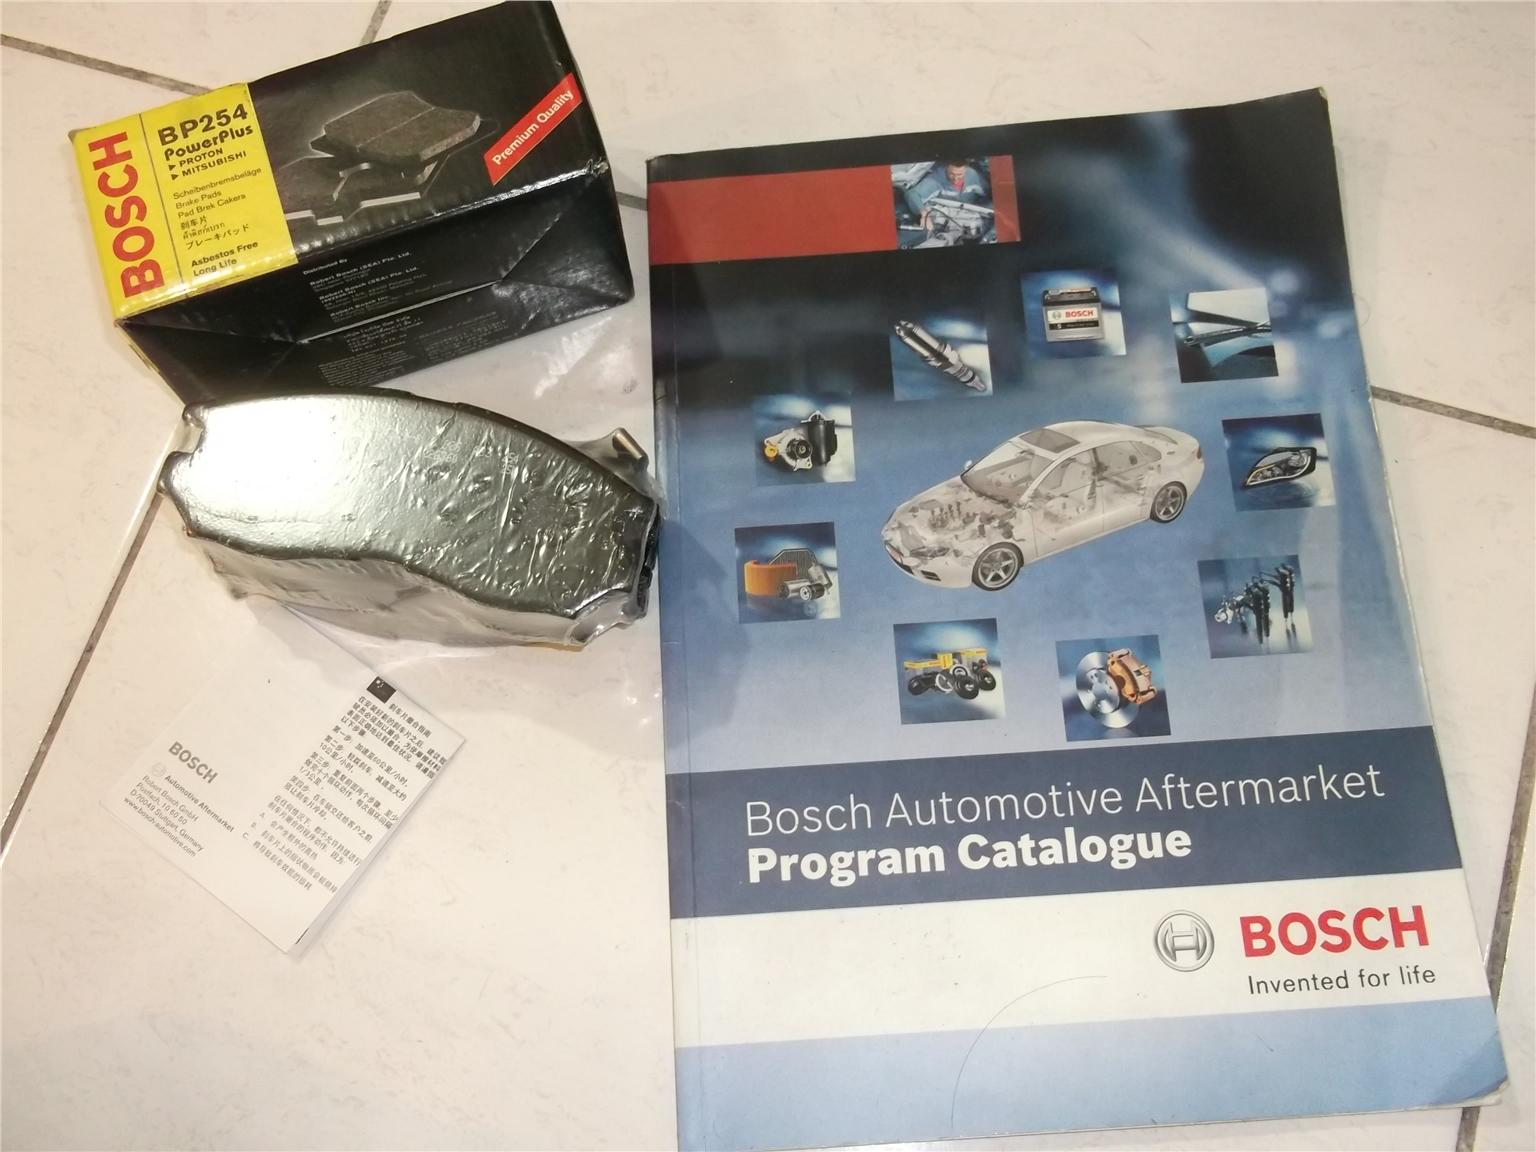 BOSCH POWER PLUS BRAKE PAD for WIRA/SATRIA 1.6/ PERDANA 2.0